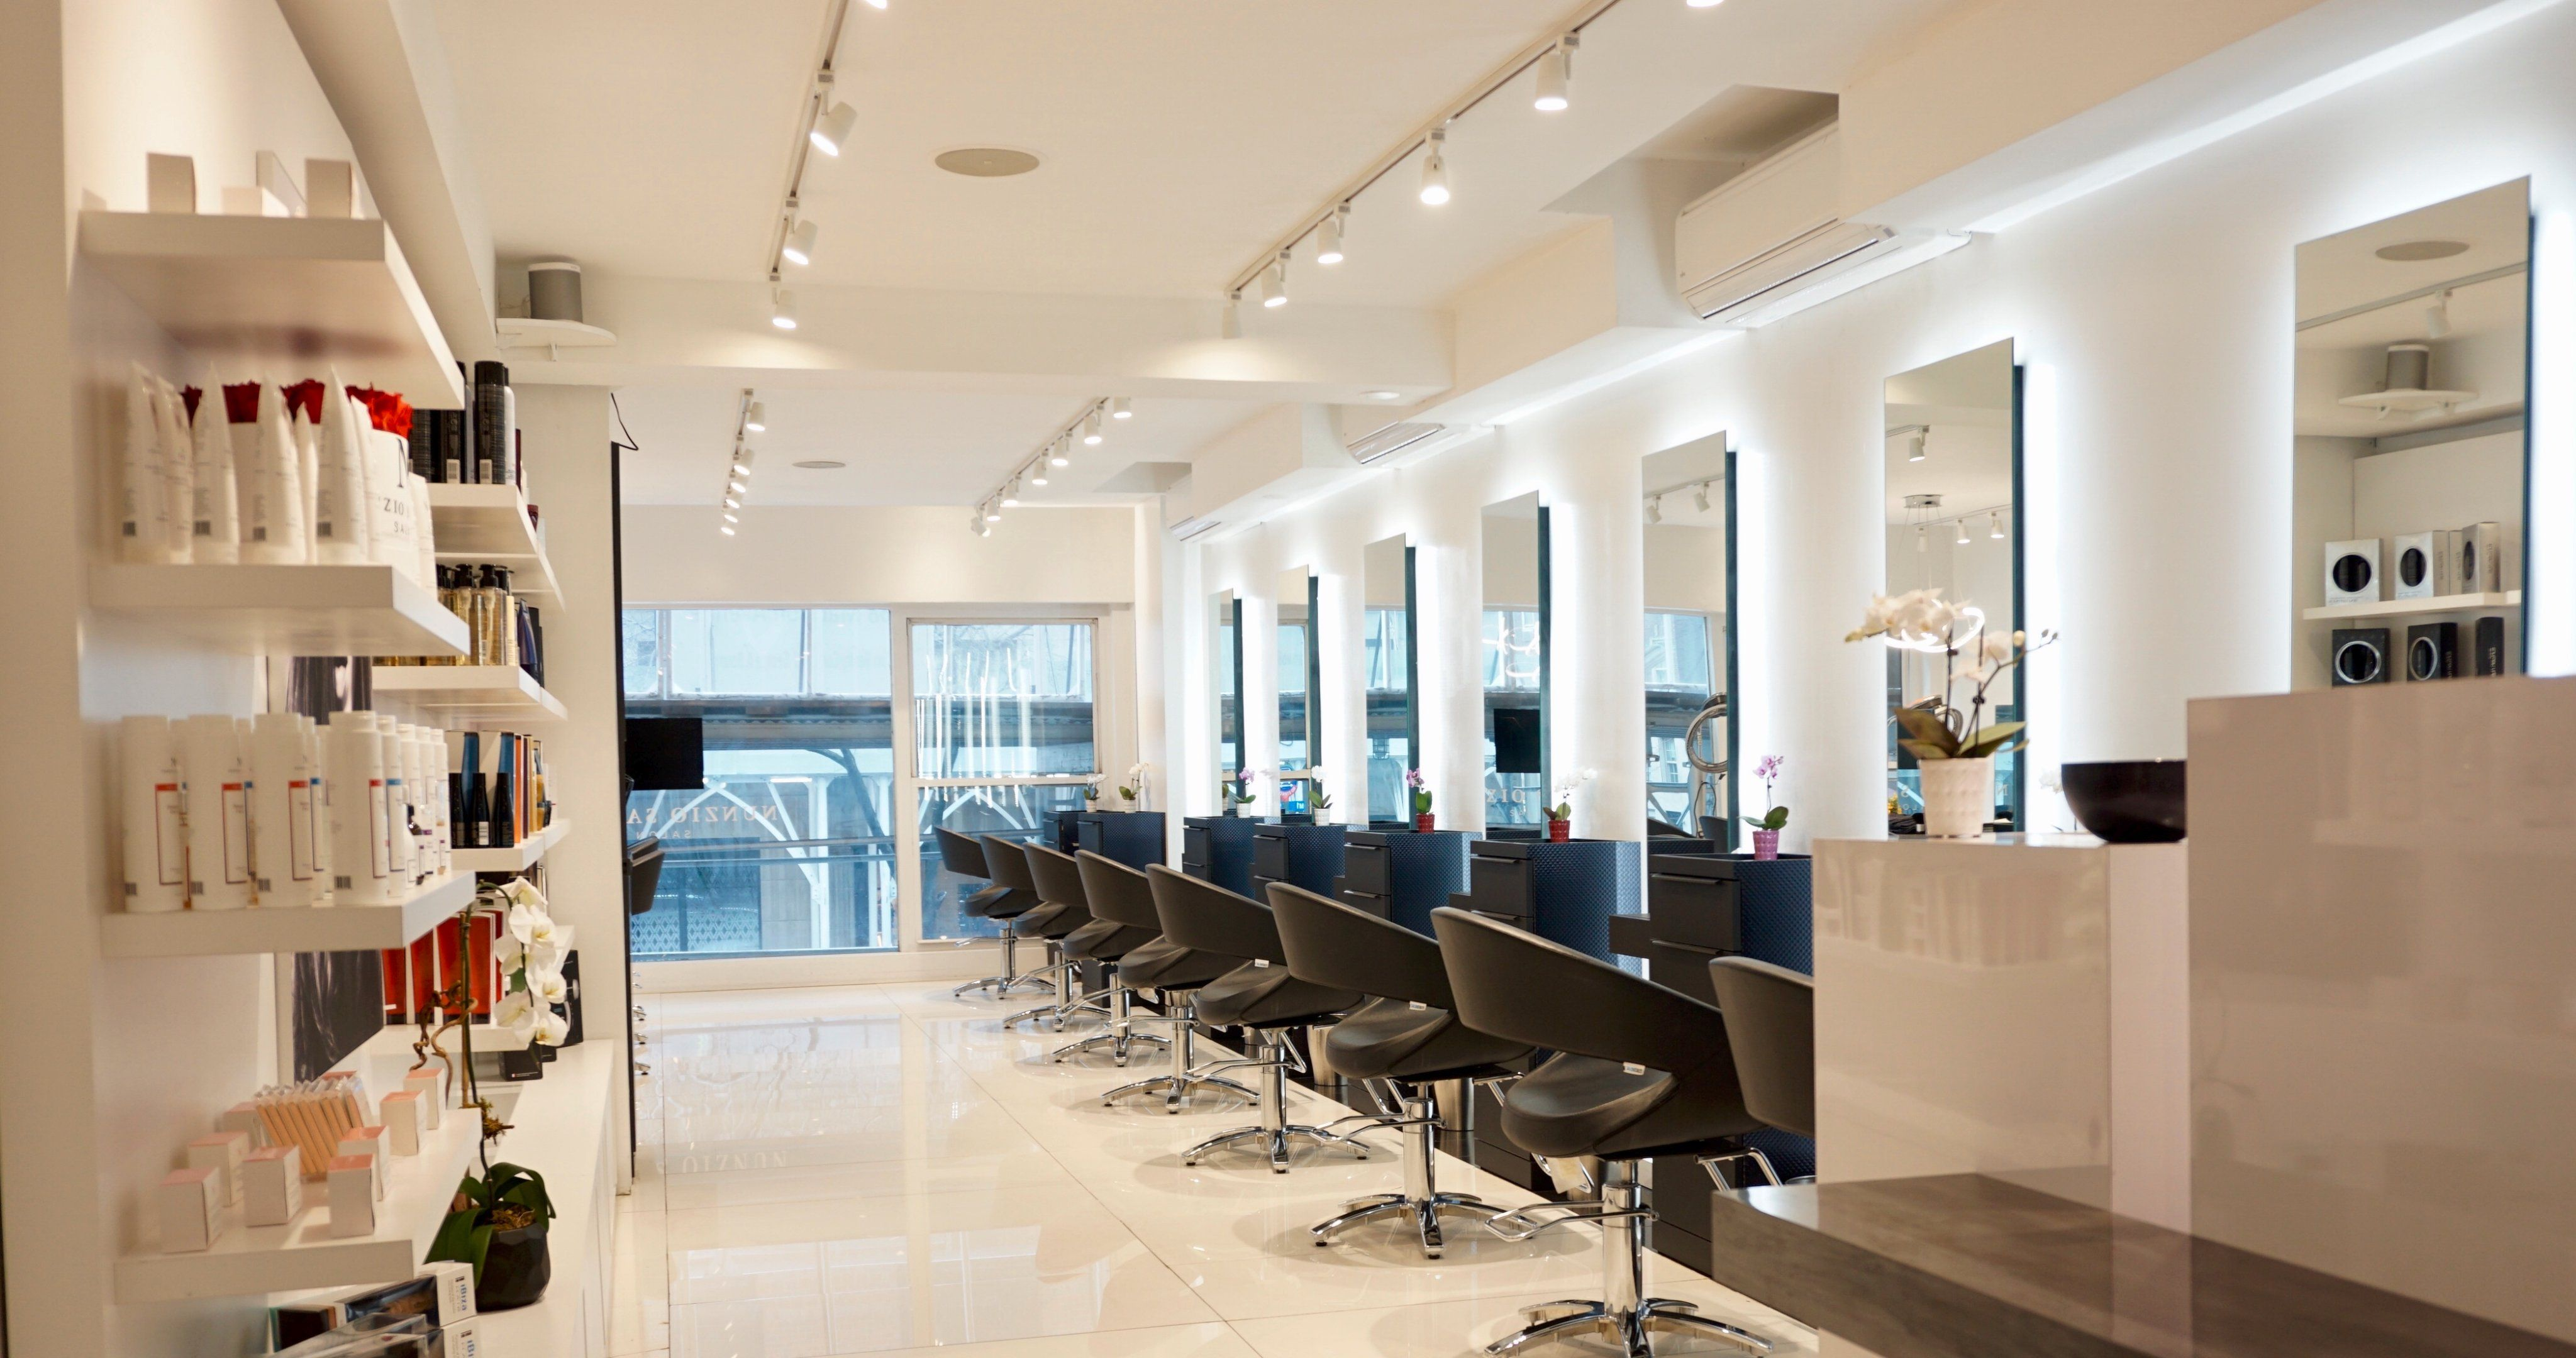 What S The Best Hairsalonnearme In Nyc Visit Nunziosavianossalon For A Trendy Hairstyle Or Laid Back Hairtreatment Call 212 98 Hair Salon Home Decor Home